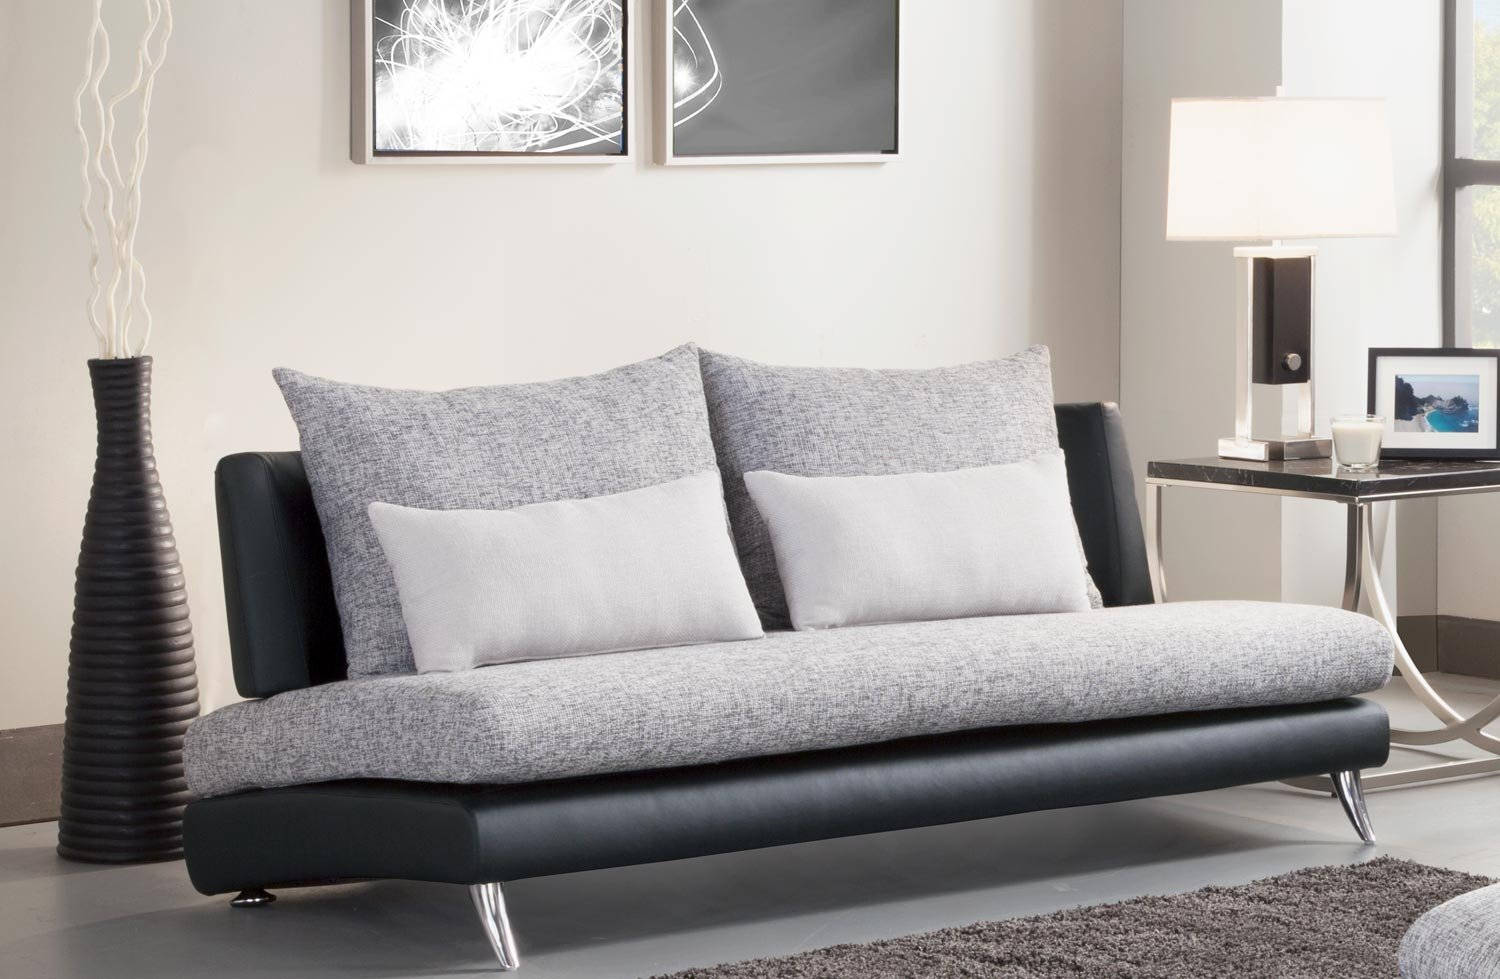 Renton Collection Armless Sofa in Black and Gray by Homelegance